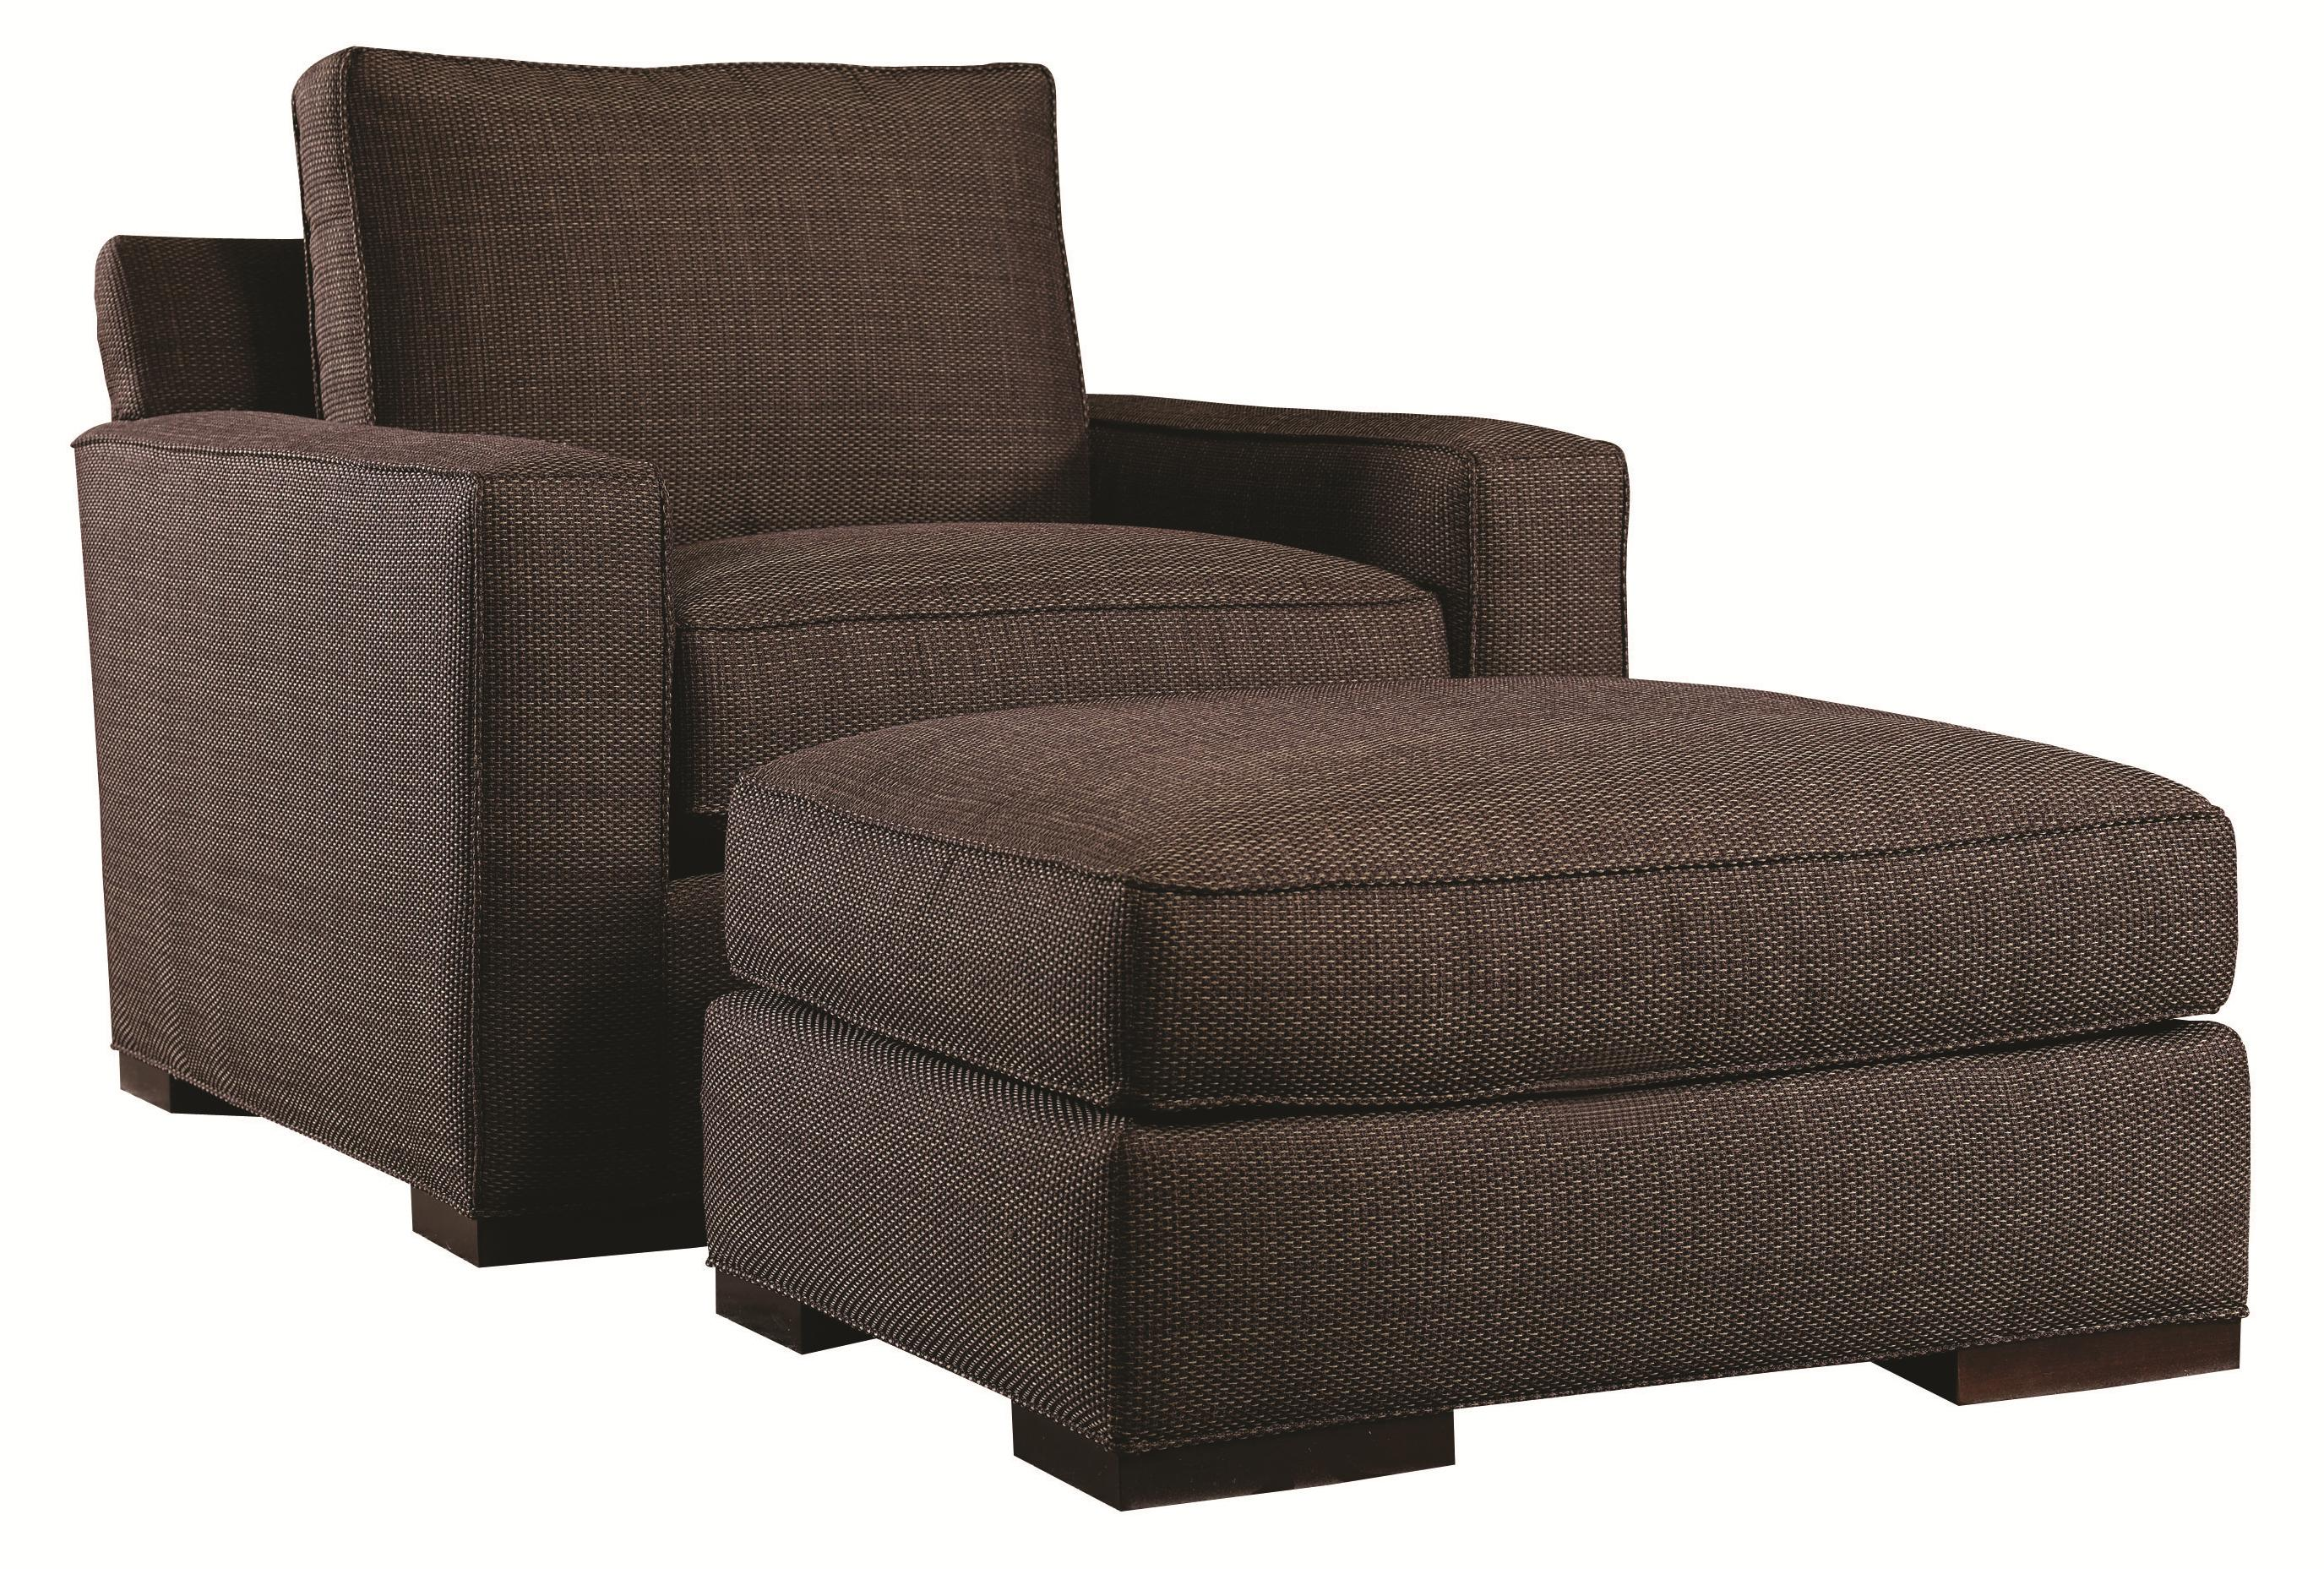 Urban Spaces - Bond Chair and Ottoman by Lexington at Baer's Furniture